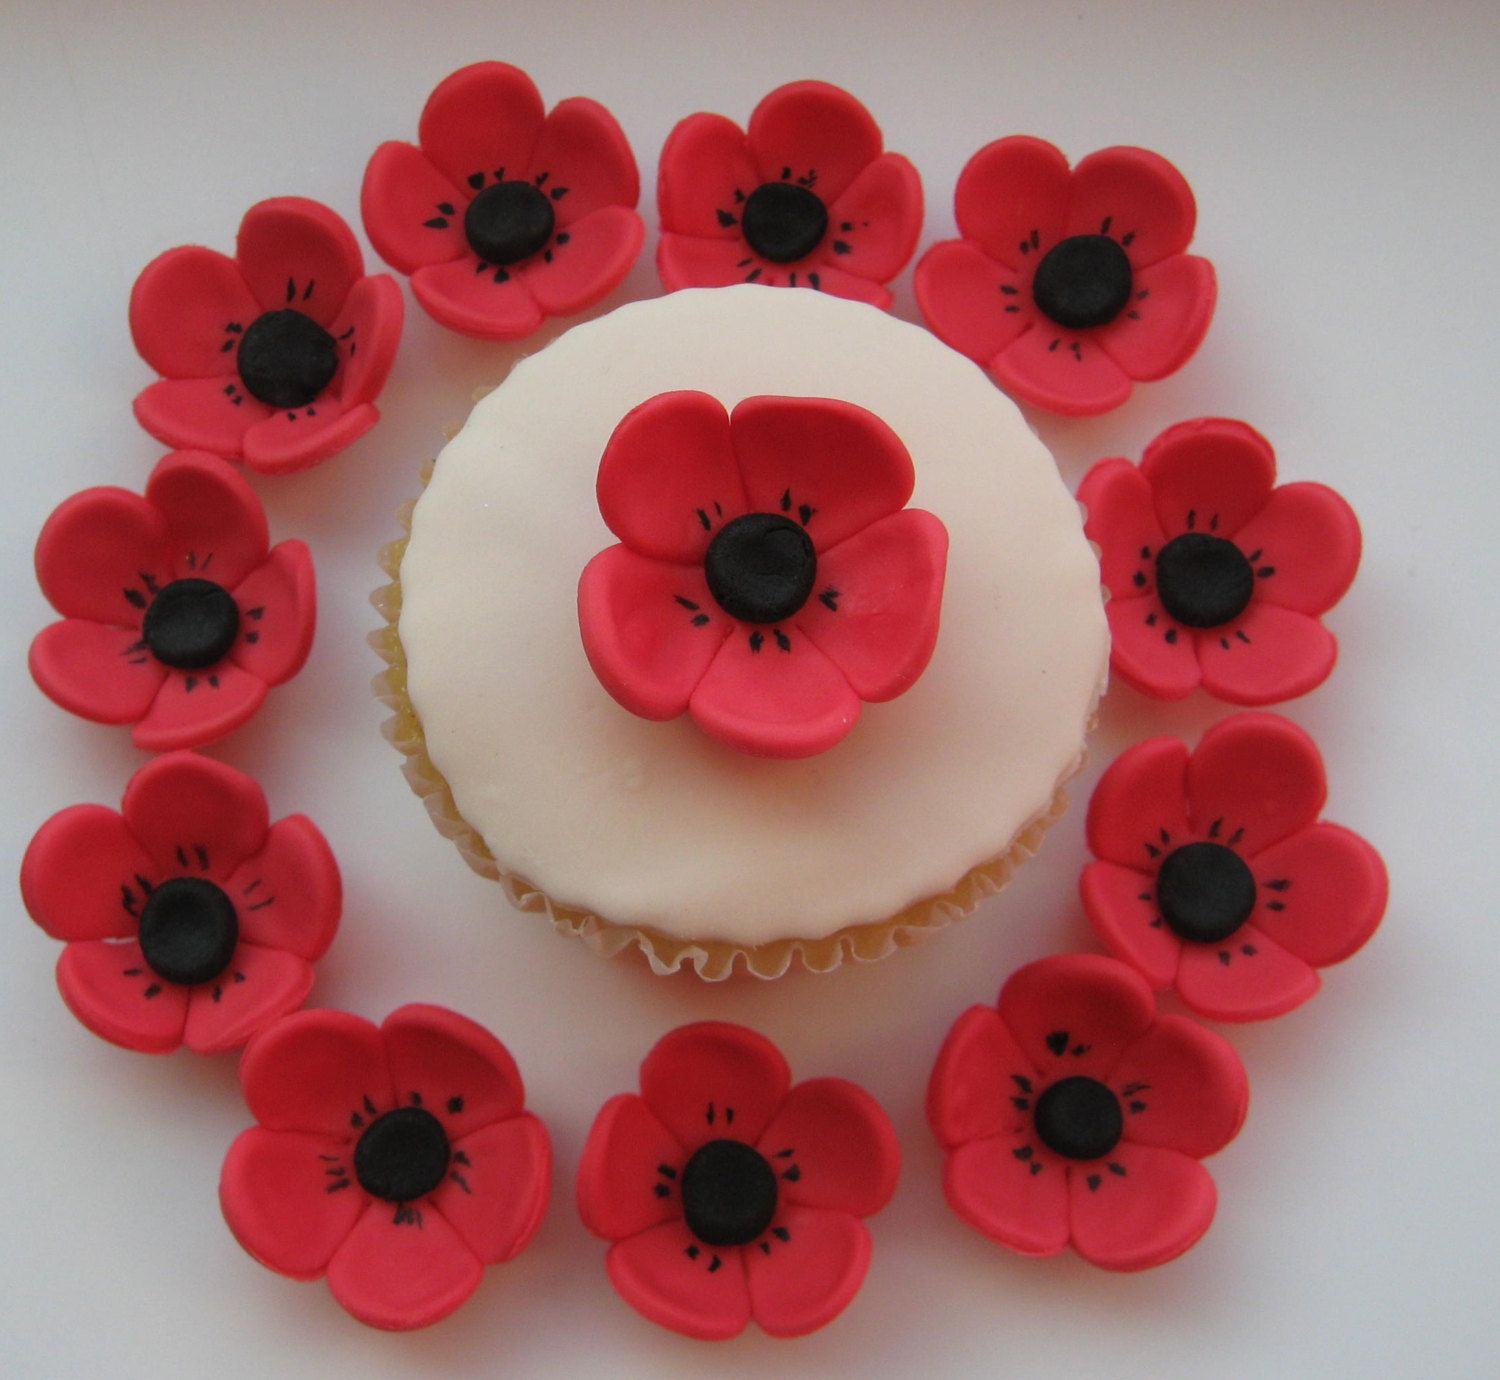 Edible Sugar Icing Red Poppy Flower Cupcake Cake Decorations